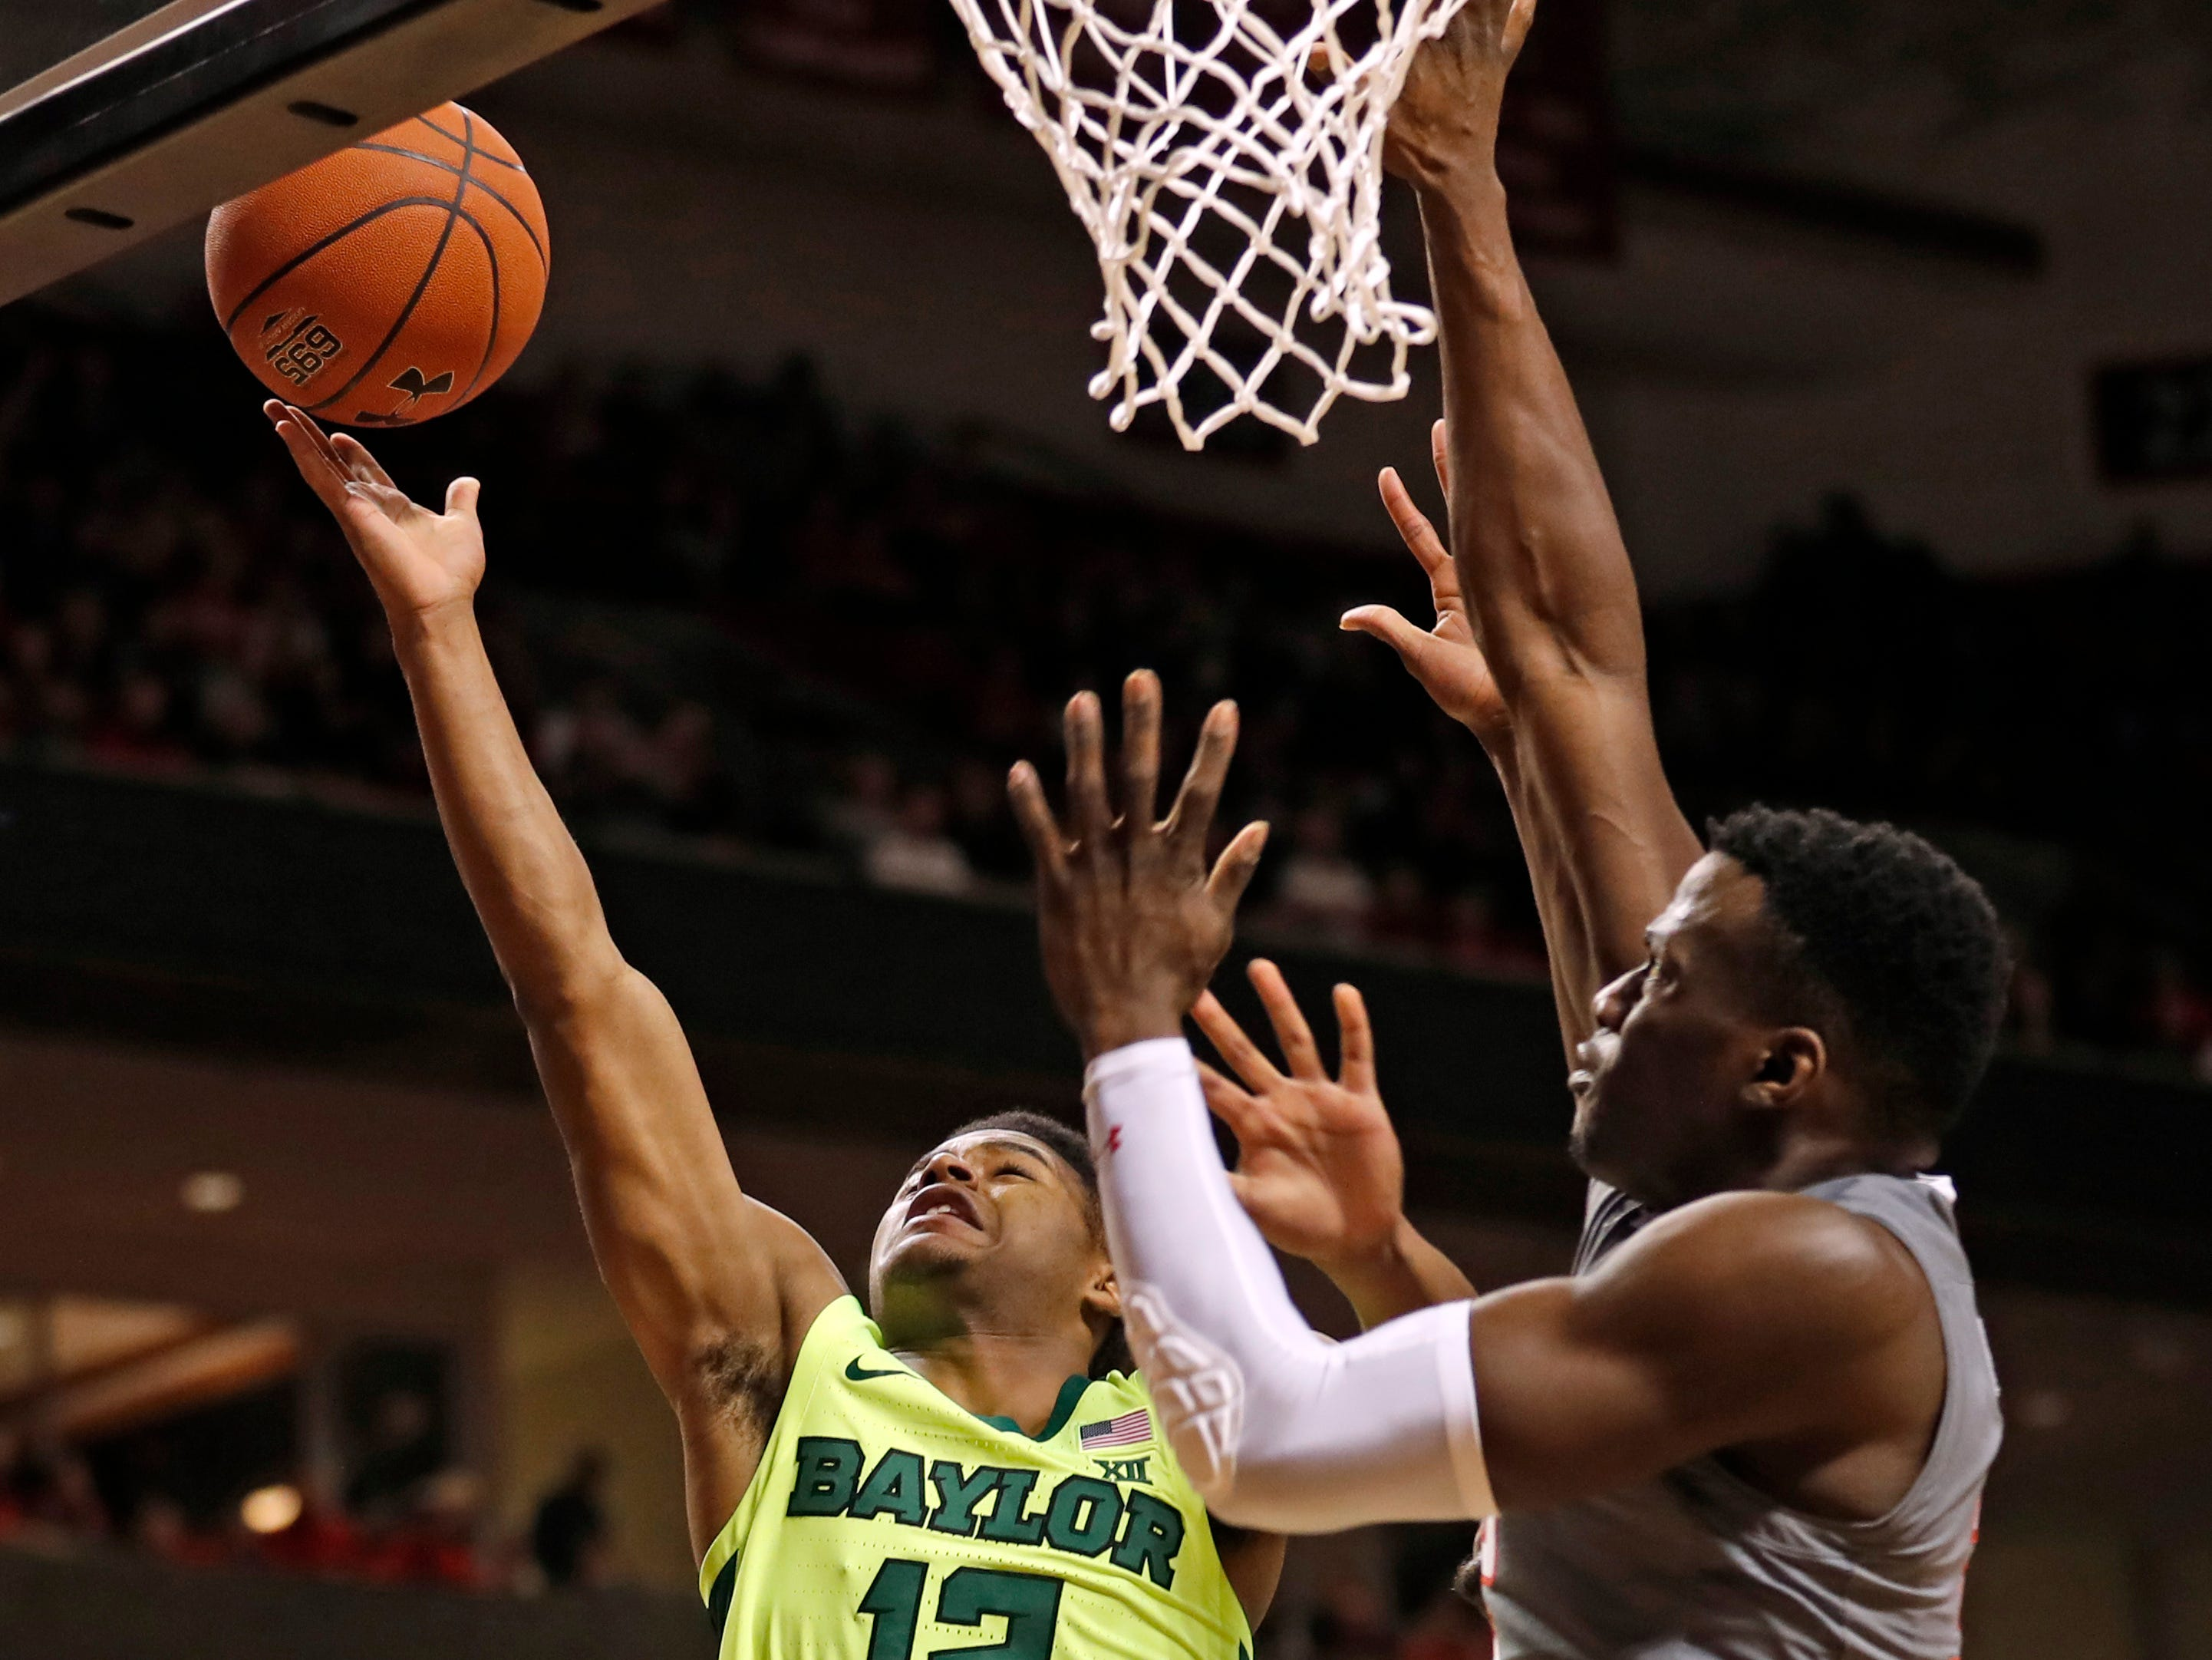 Baylor's Jared Butler (12) lays up the ball around Texas Tech's Norense Odiase (32) during the first half of an NCAA college basketball game Saturday, Feb. 16, 2019, in Lubbock, Texas. (AP Photo/Brad Tollefson)